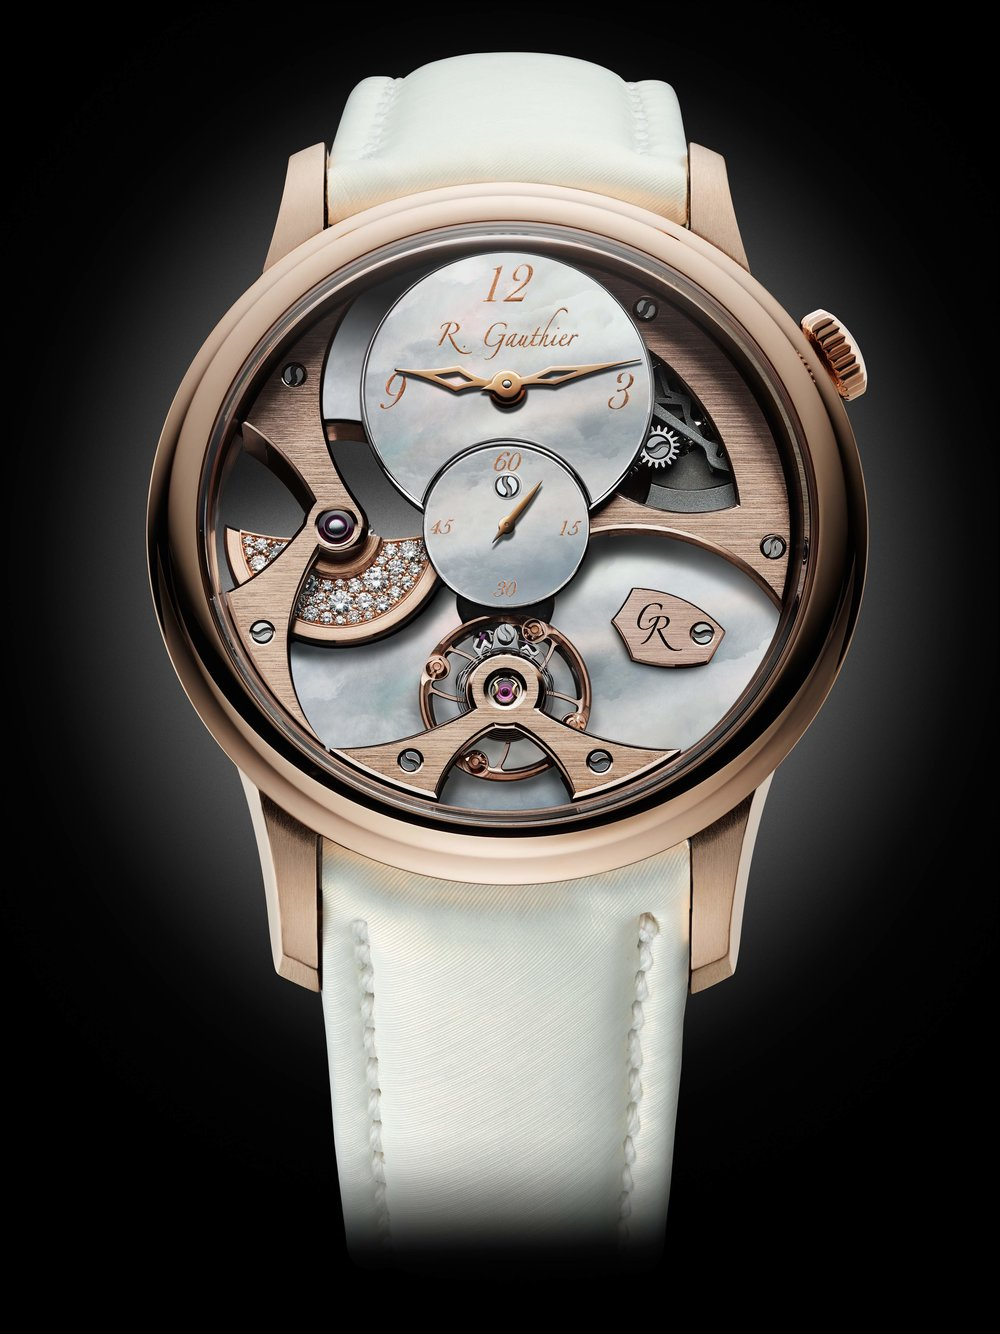 Romain_Gauthier_Insight_Micro-Rotor_Lady_5_red_gold_white_dial.jpg